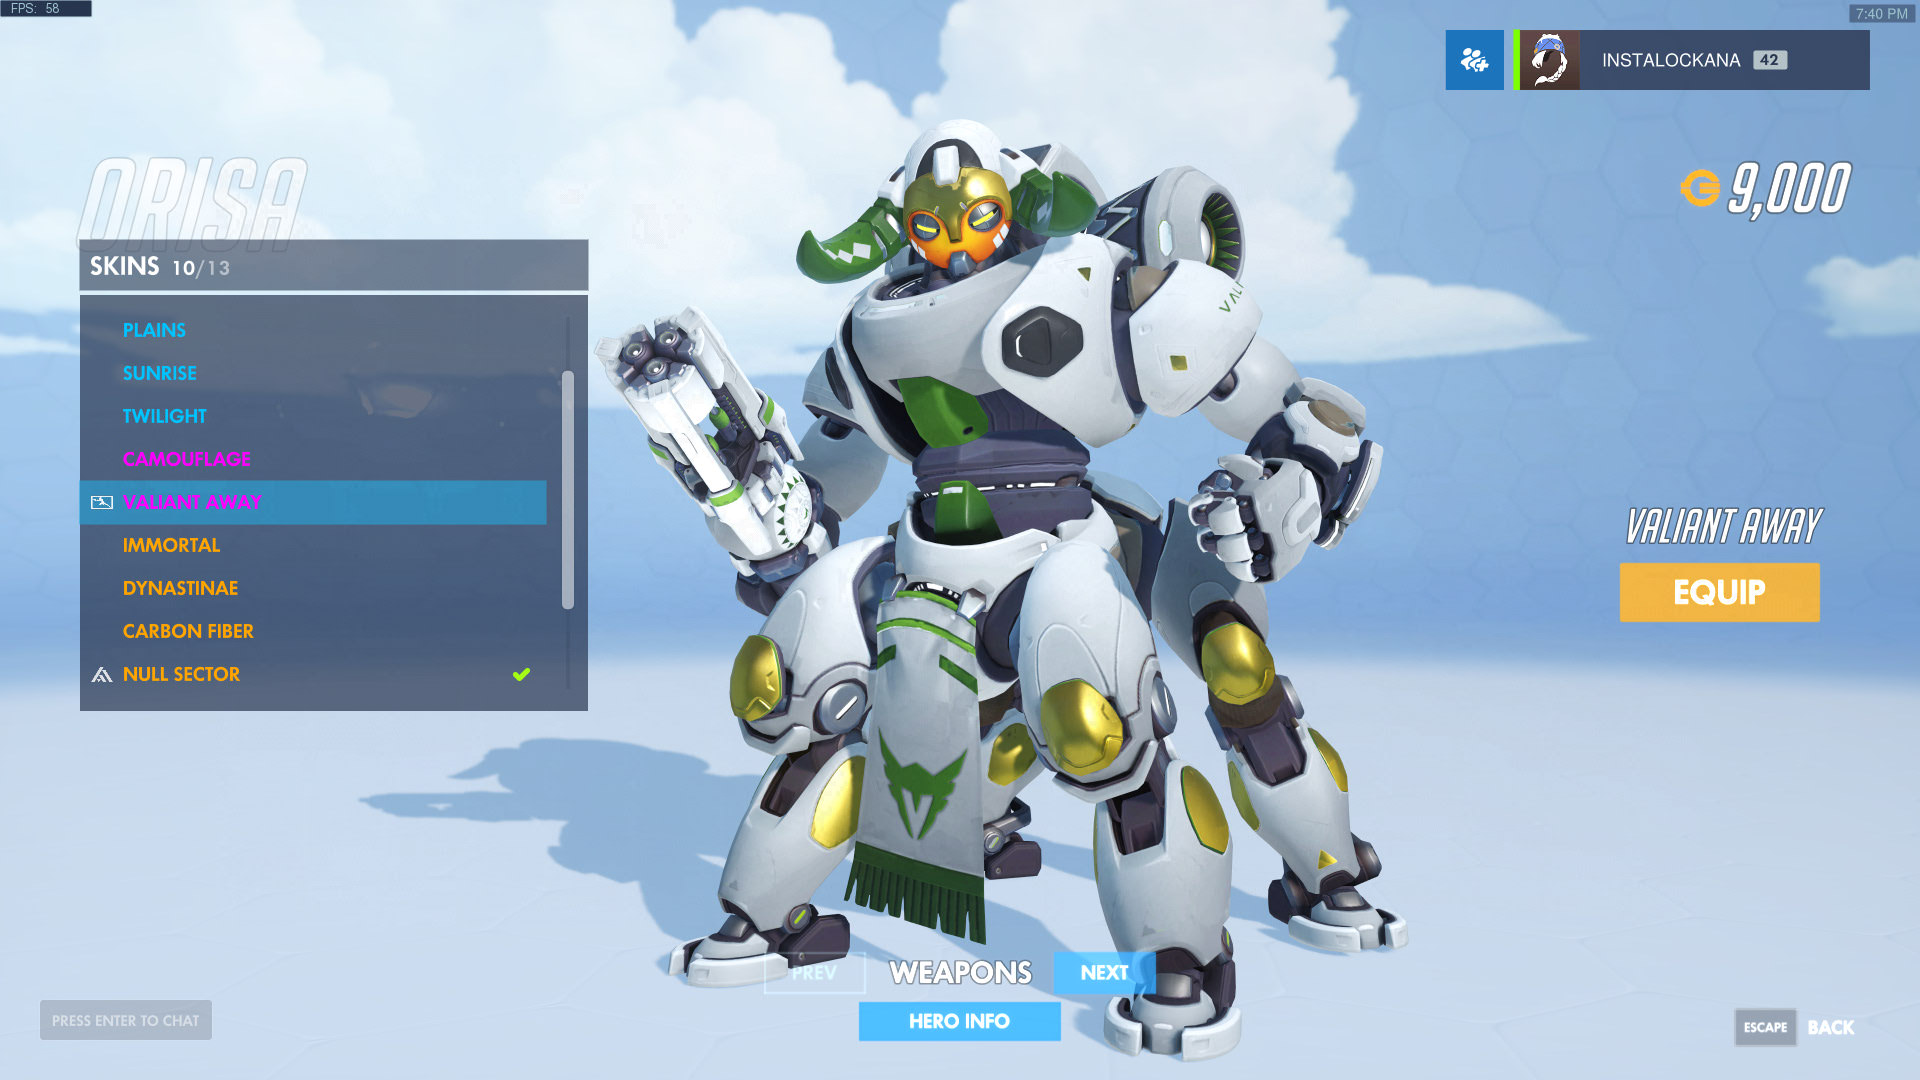 The Overwatch League All-Access Pass rewards are now available